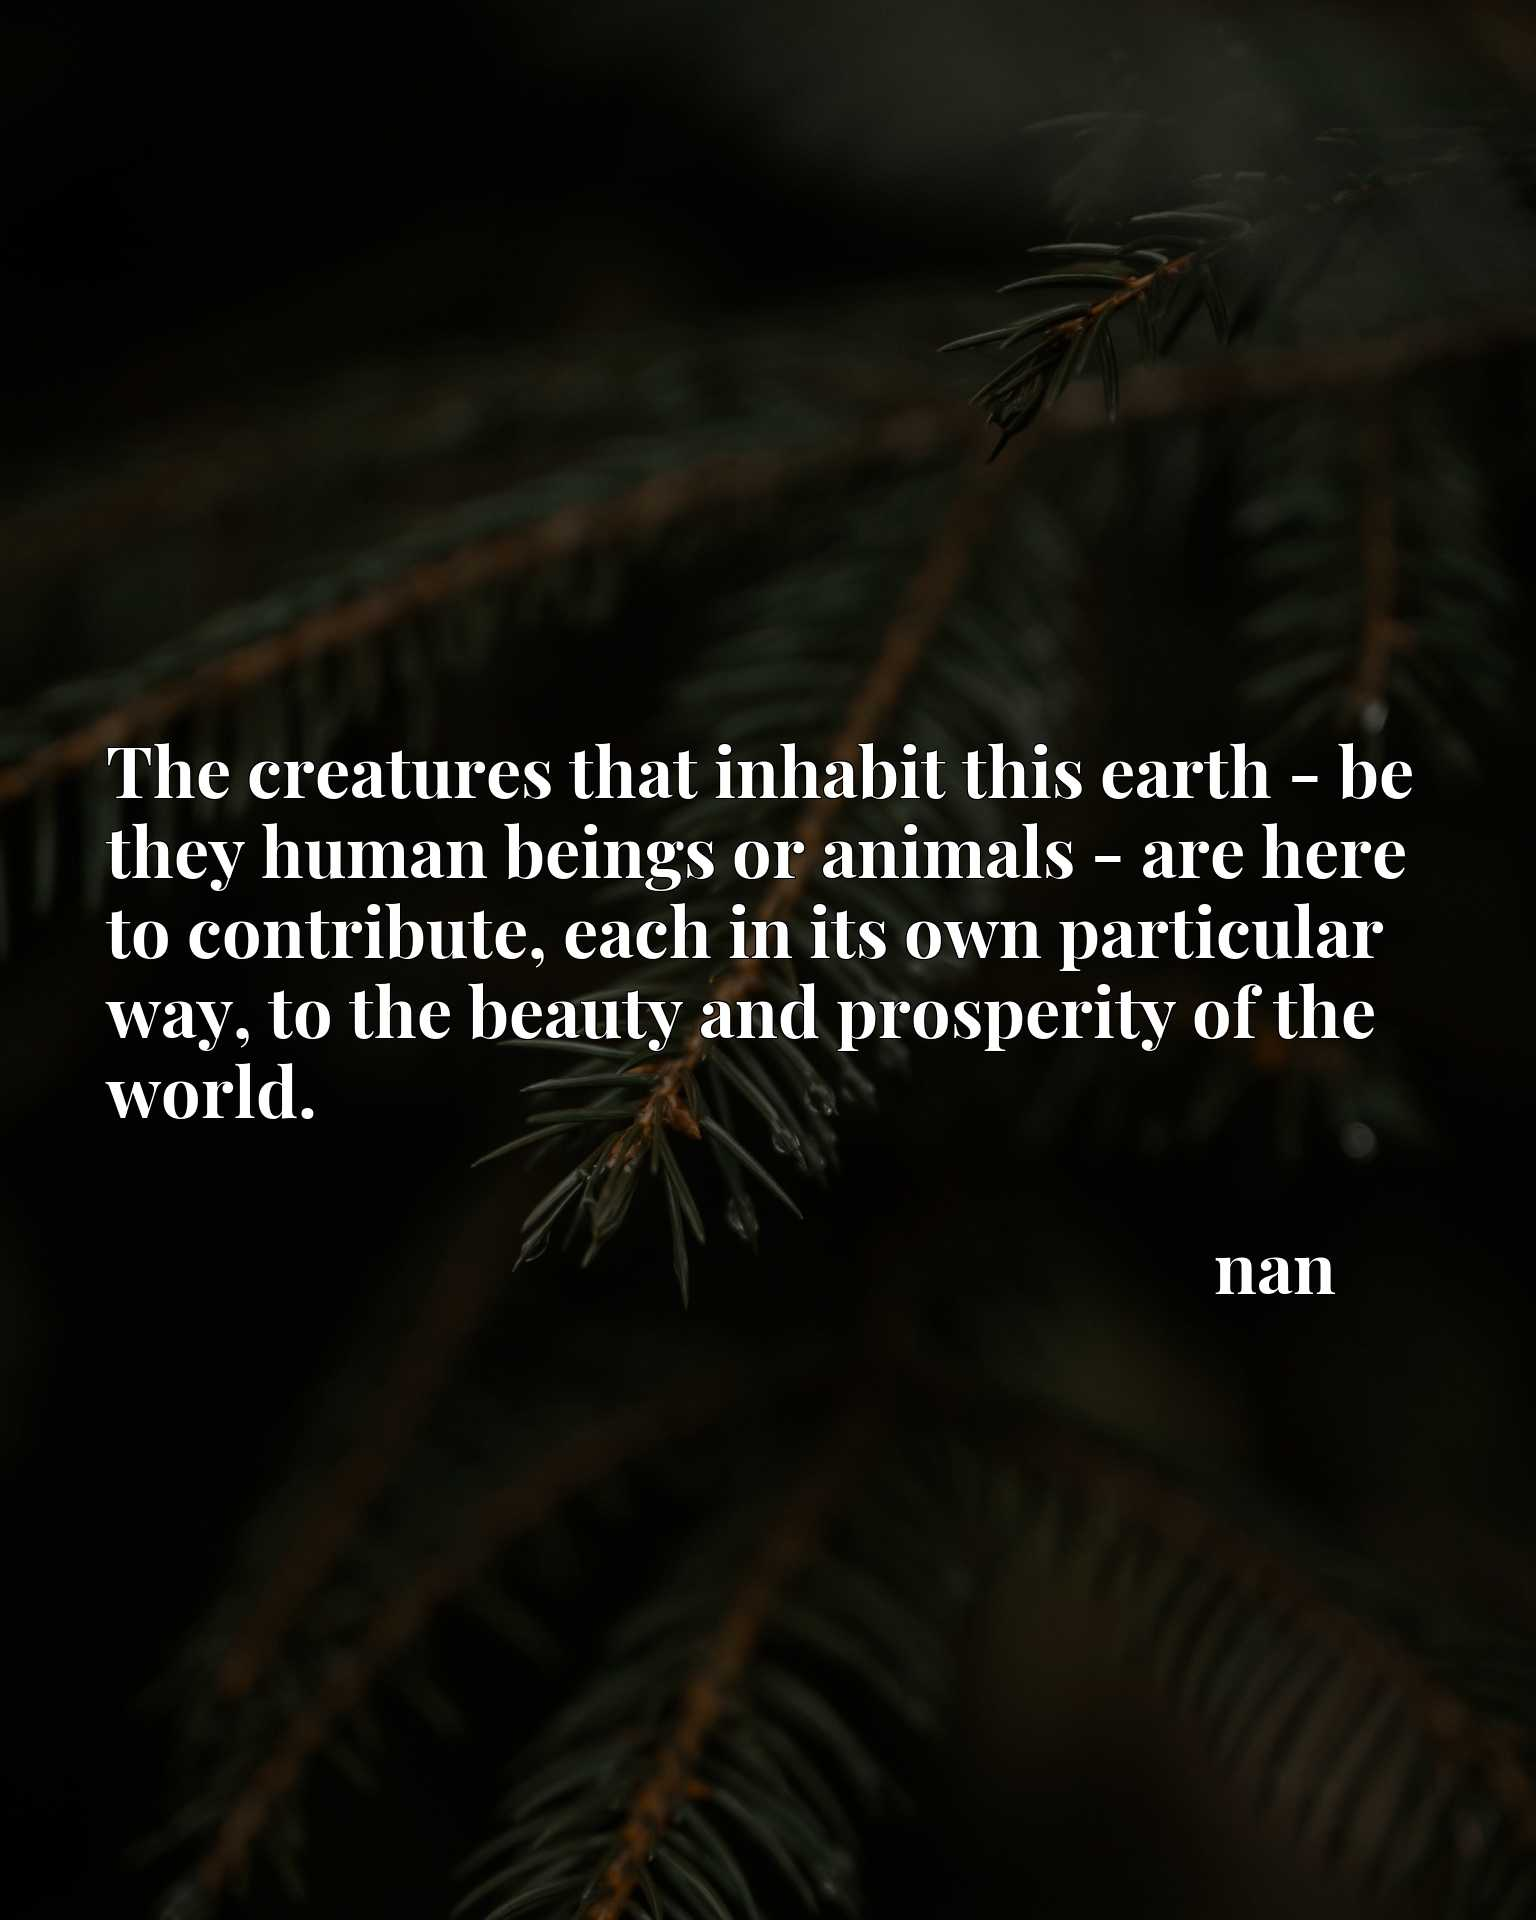 The creatures that inhabit this earth - be they human beings or animals - are here to contribute, each in its own particular way, to the beauty and prosperity of the world.